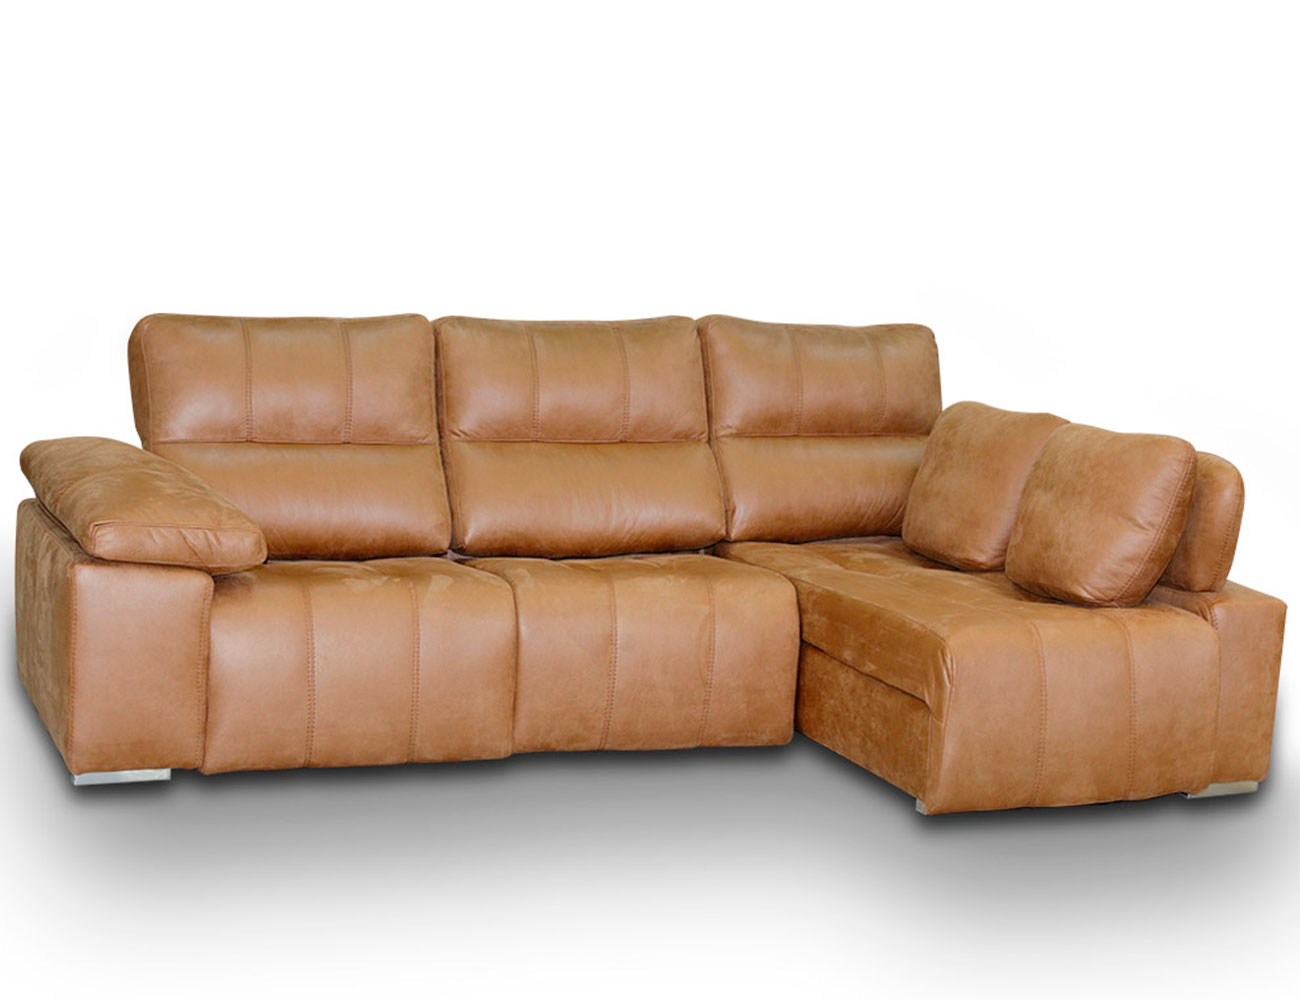 Sofa chaiselongue relax 2 motores anti manchas54